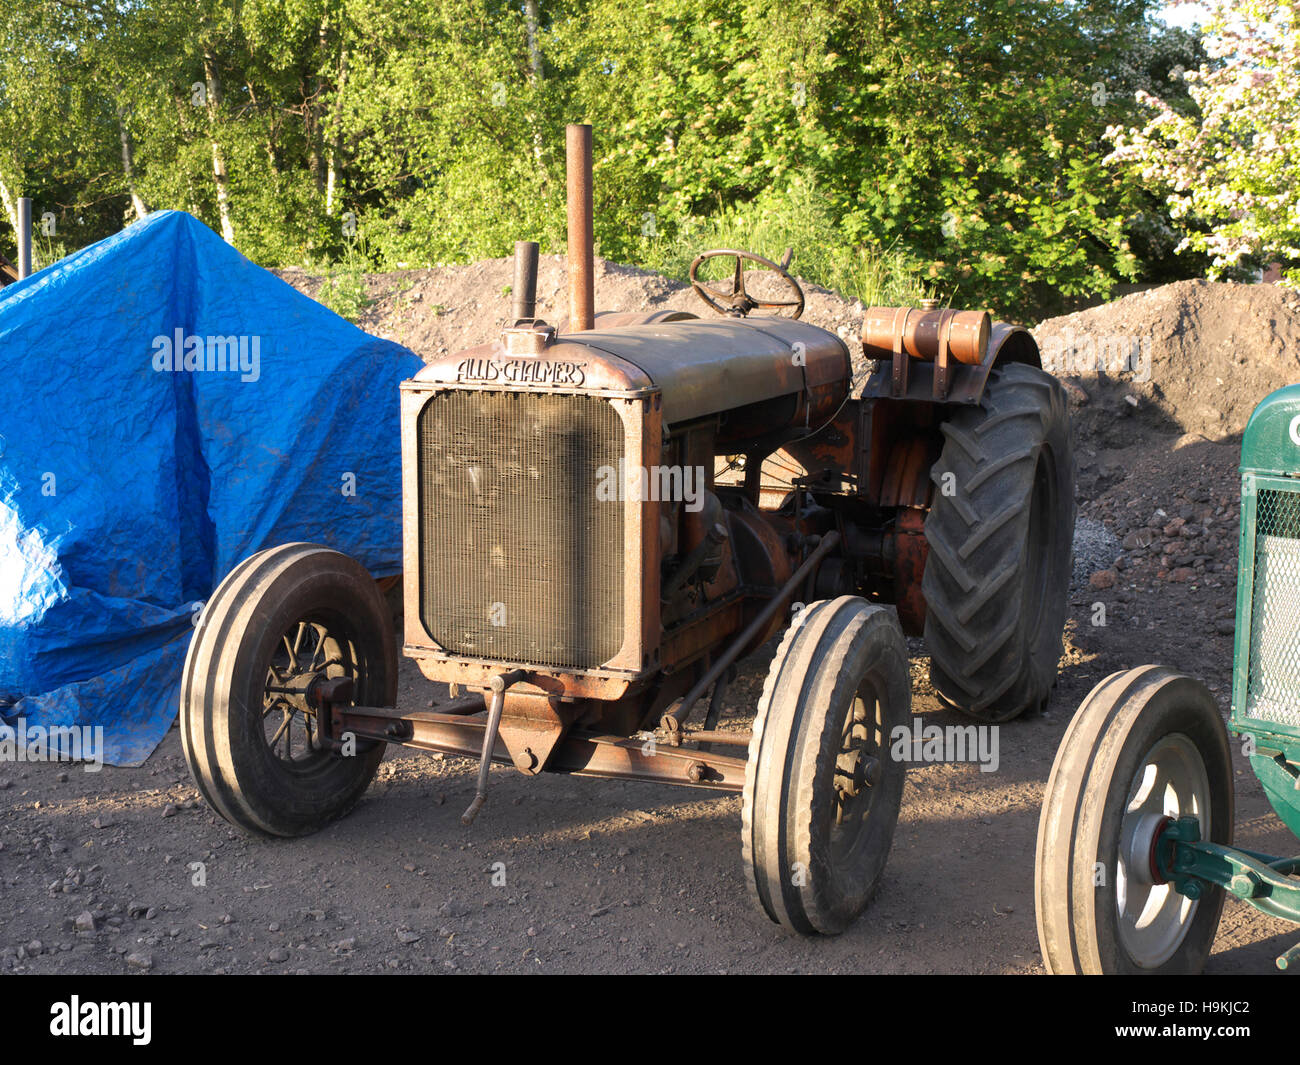 Vintage Allis Chalmers Tractor On Display At The Great Central Railway Stock Image